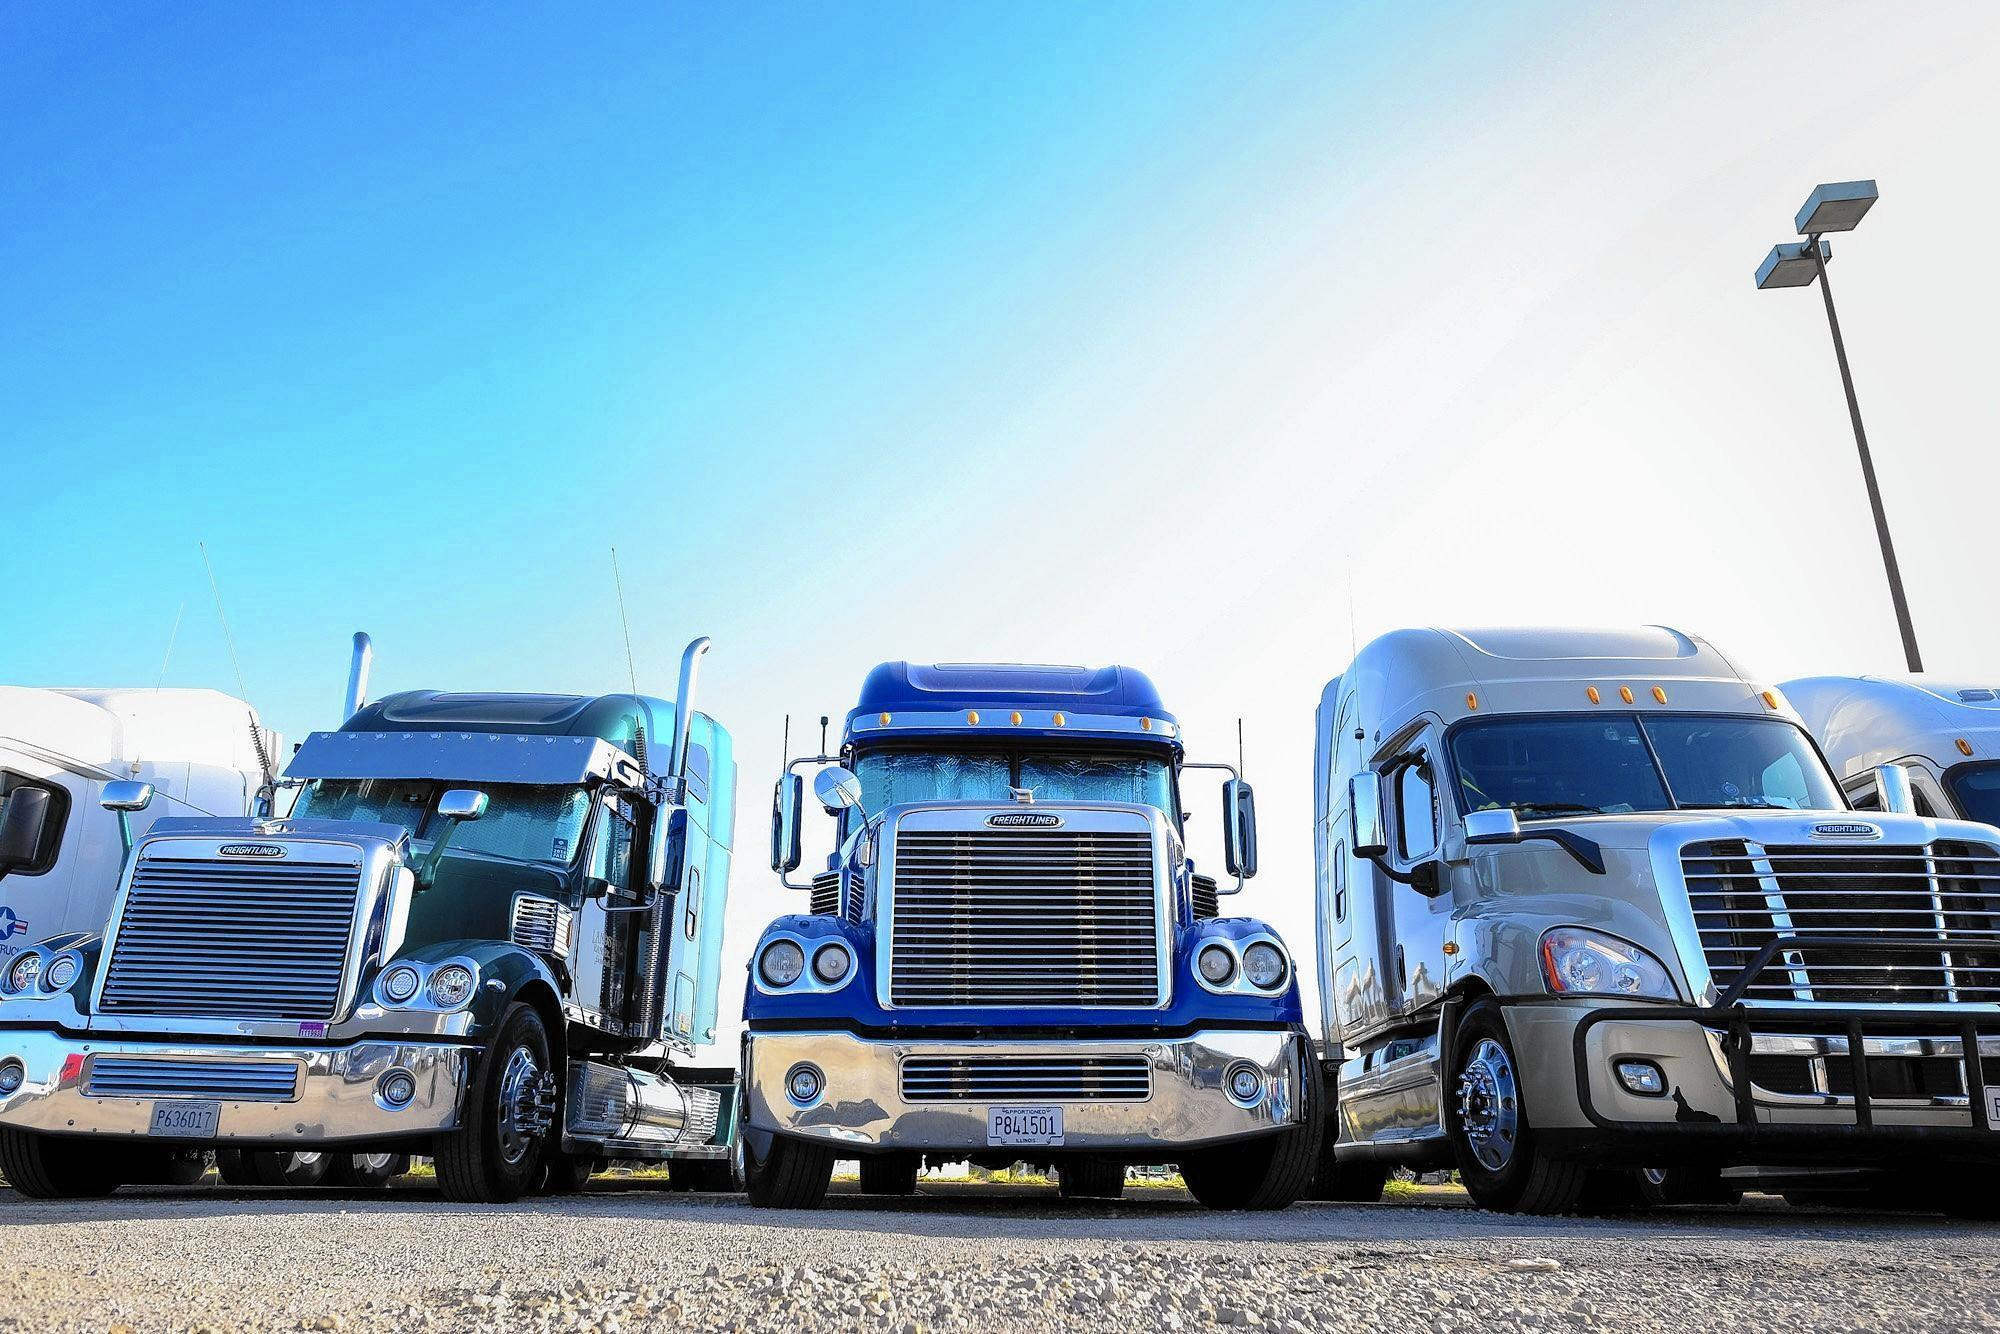 Michael A  MacDowell: Are self-driving trucks part of future? - The